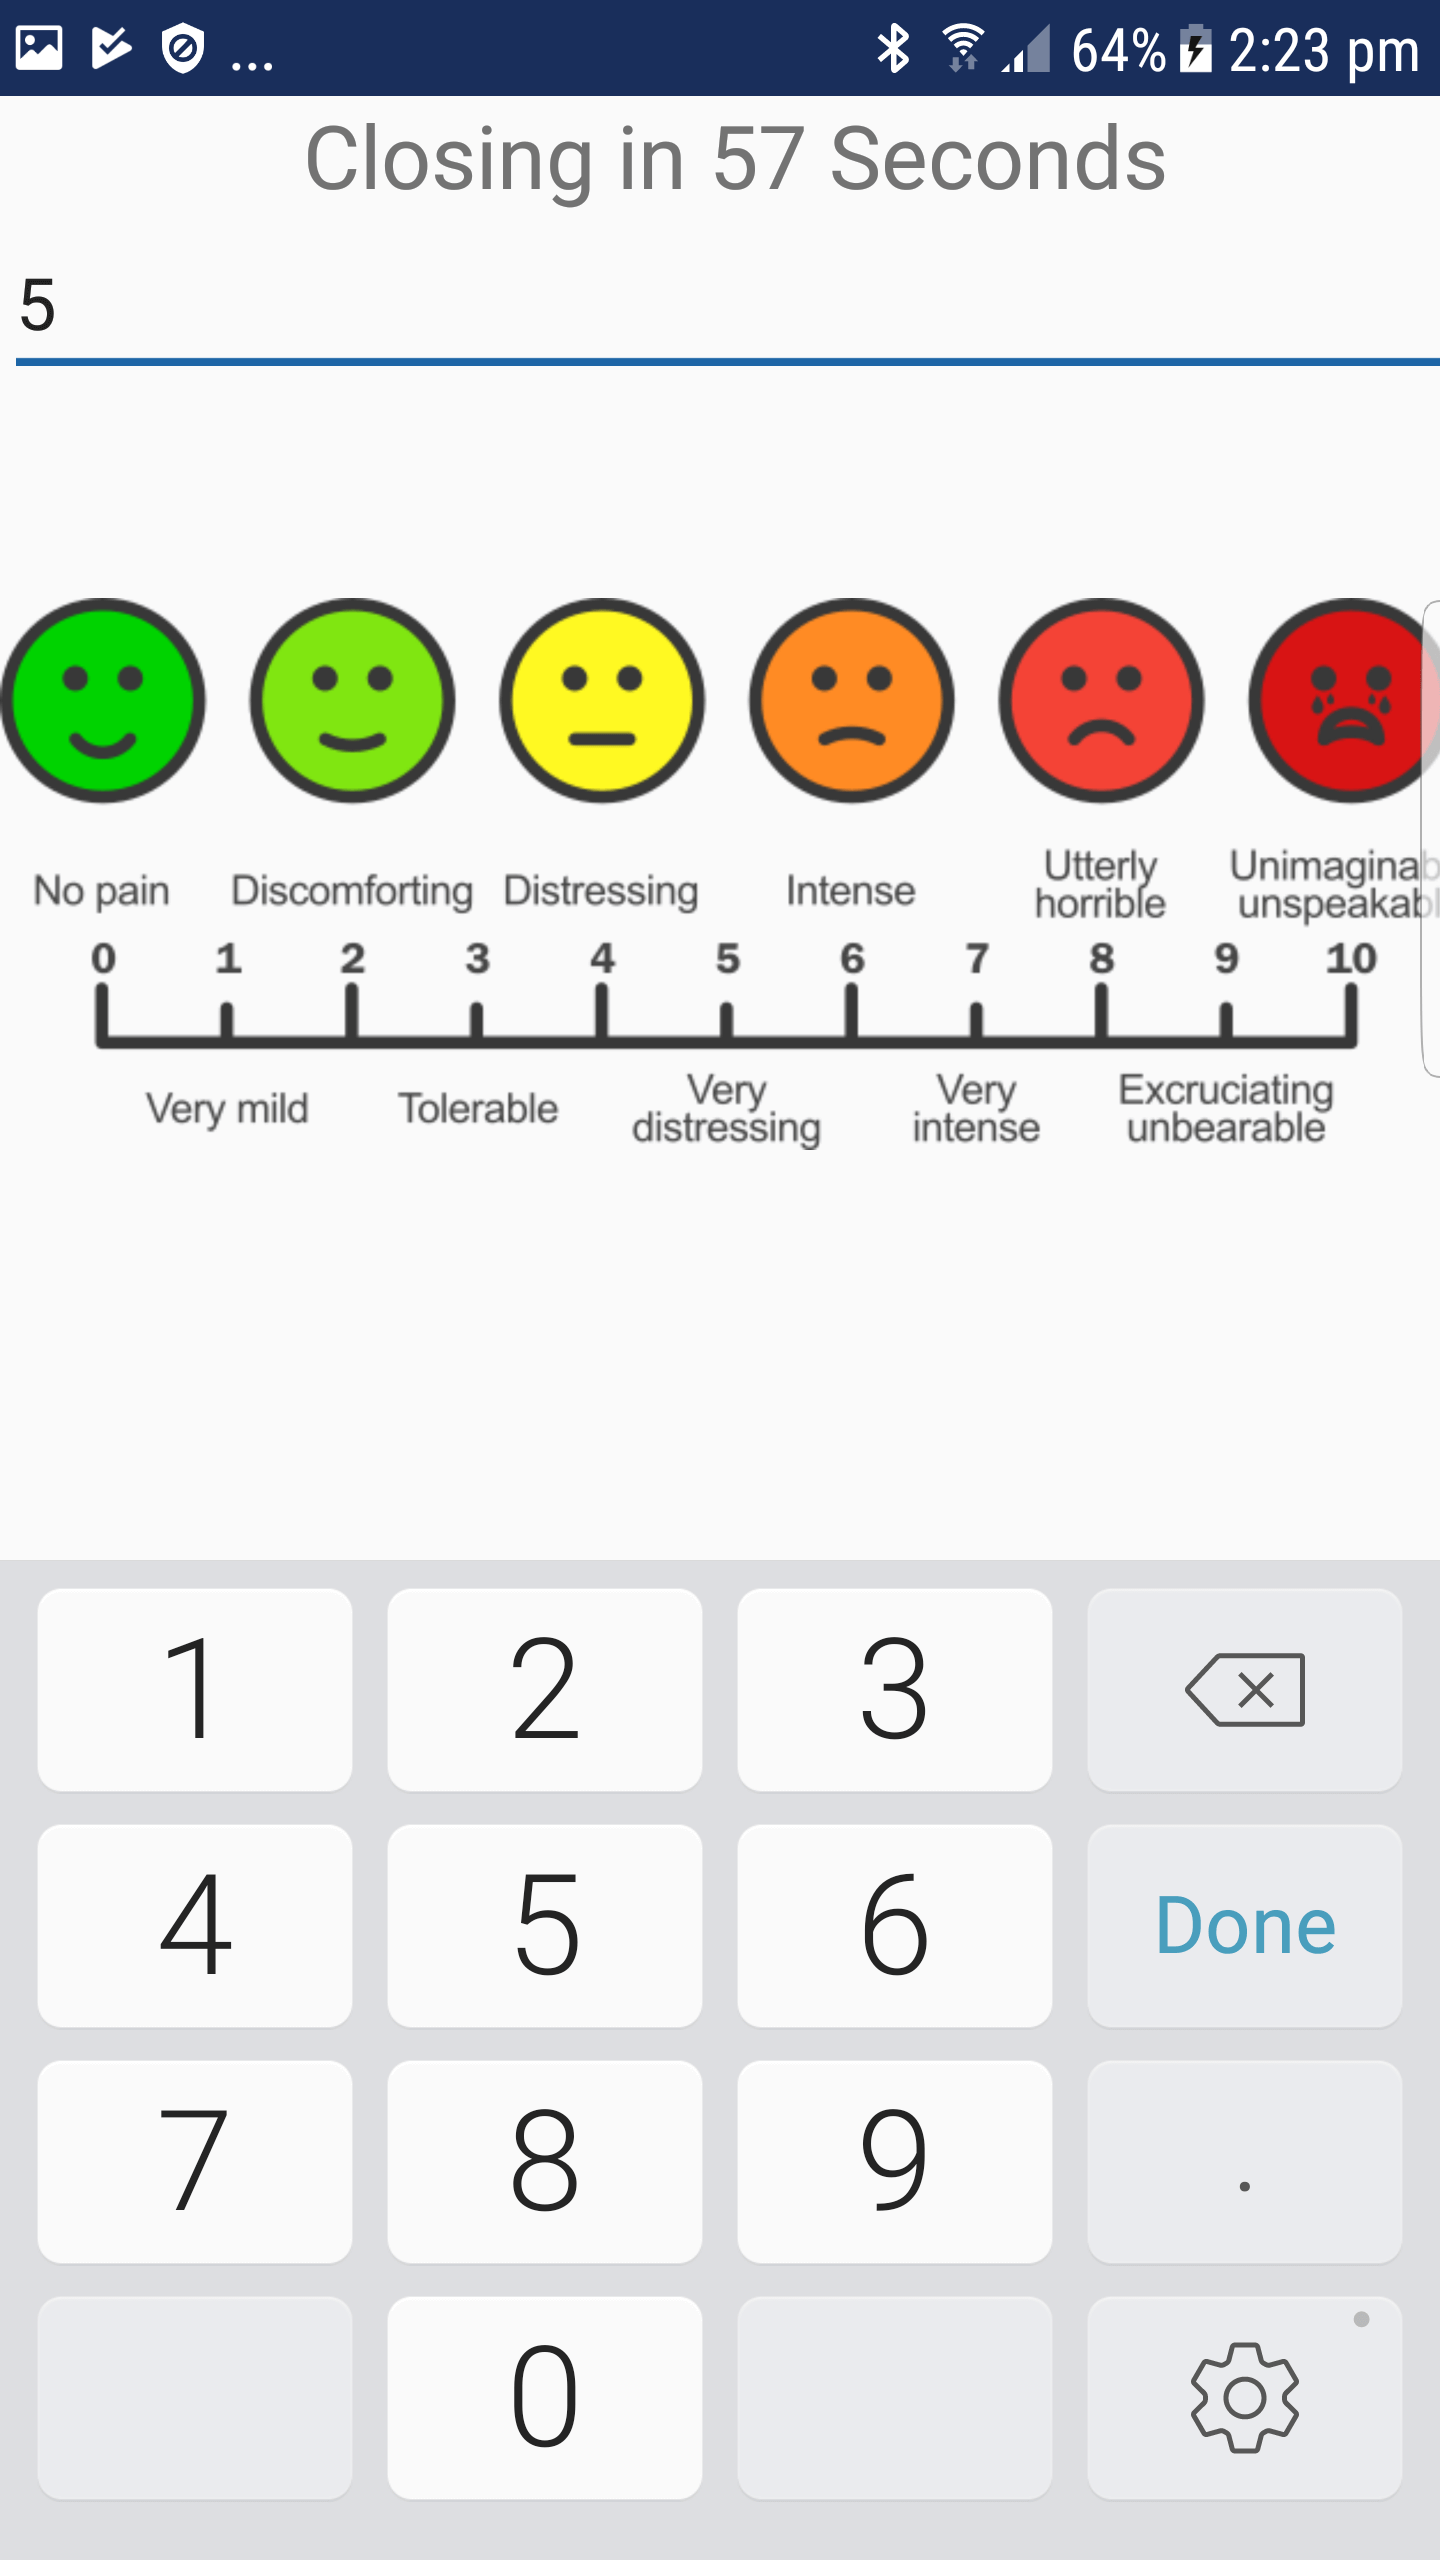 A screenshot of the chronic pain intervention app, Pain ROADMAP, displaying different levels of pain.